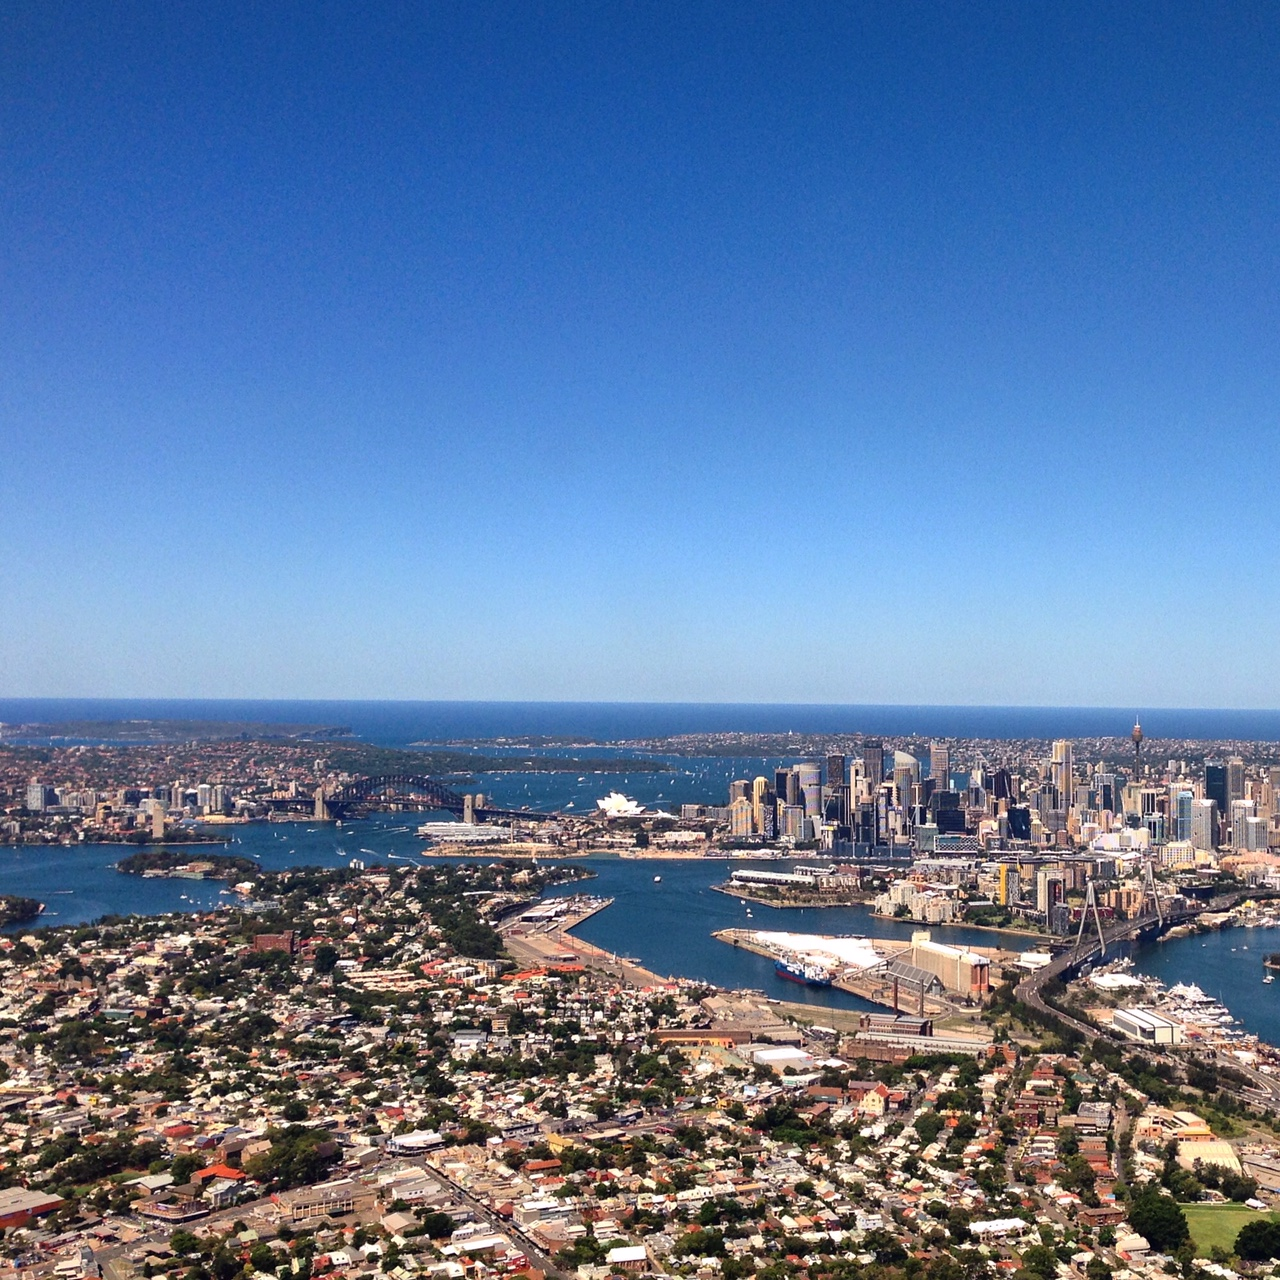 Arriving in Sydney. I'll have a flat white, darling!